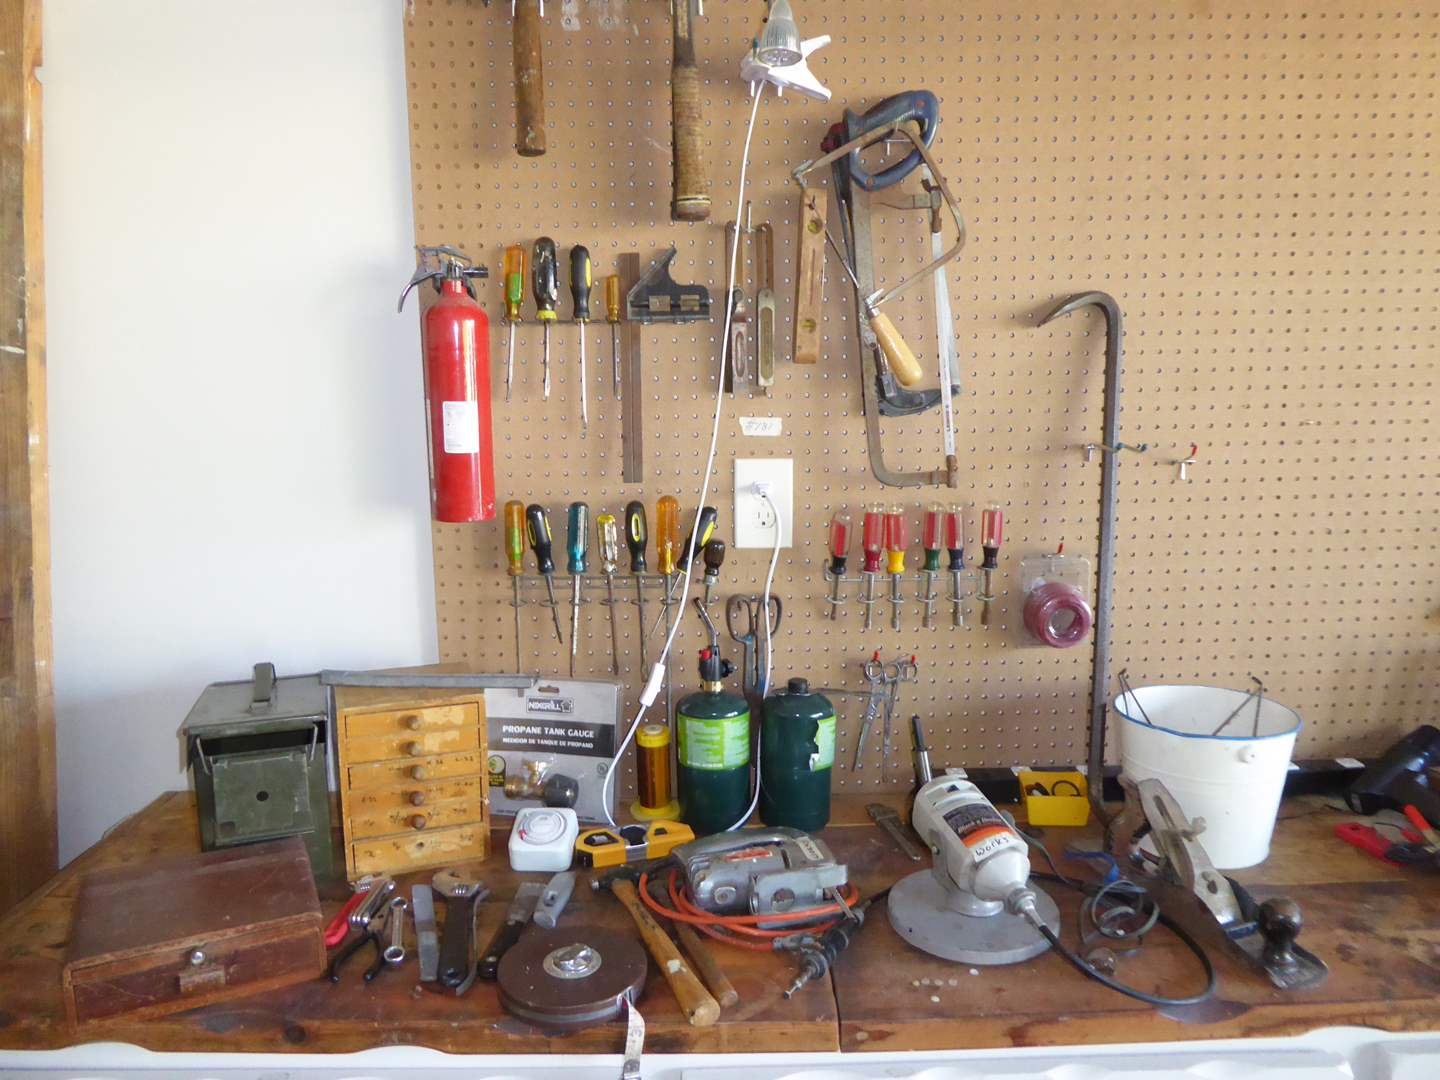 Lot # 181 - B&D Rotary Hobby Tool & Saw & Miscellaneous Tools & Hardware  (main image)